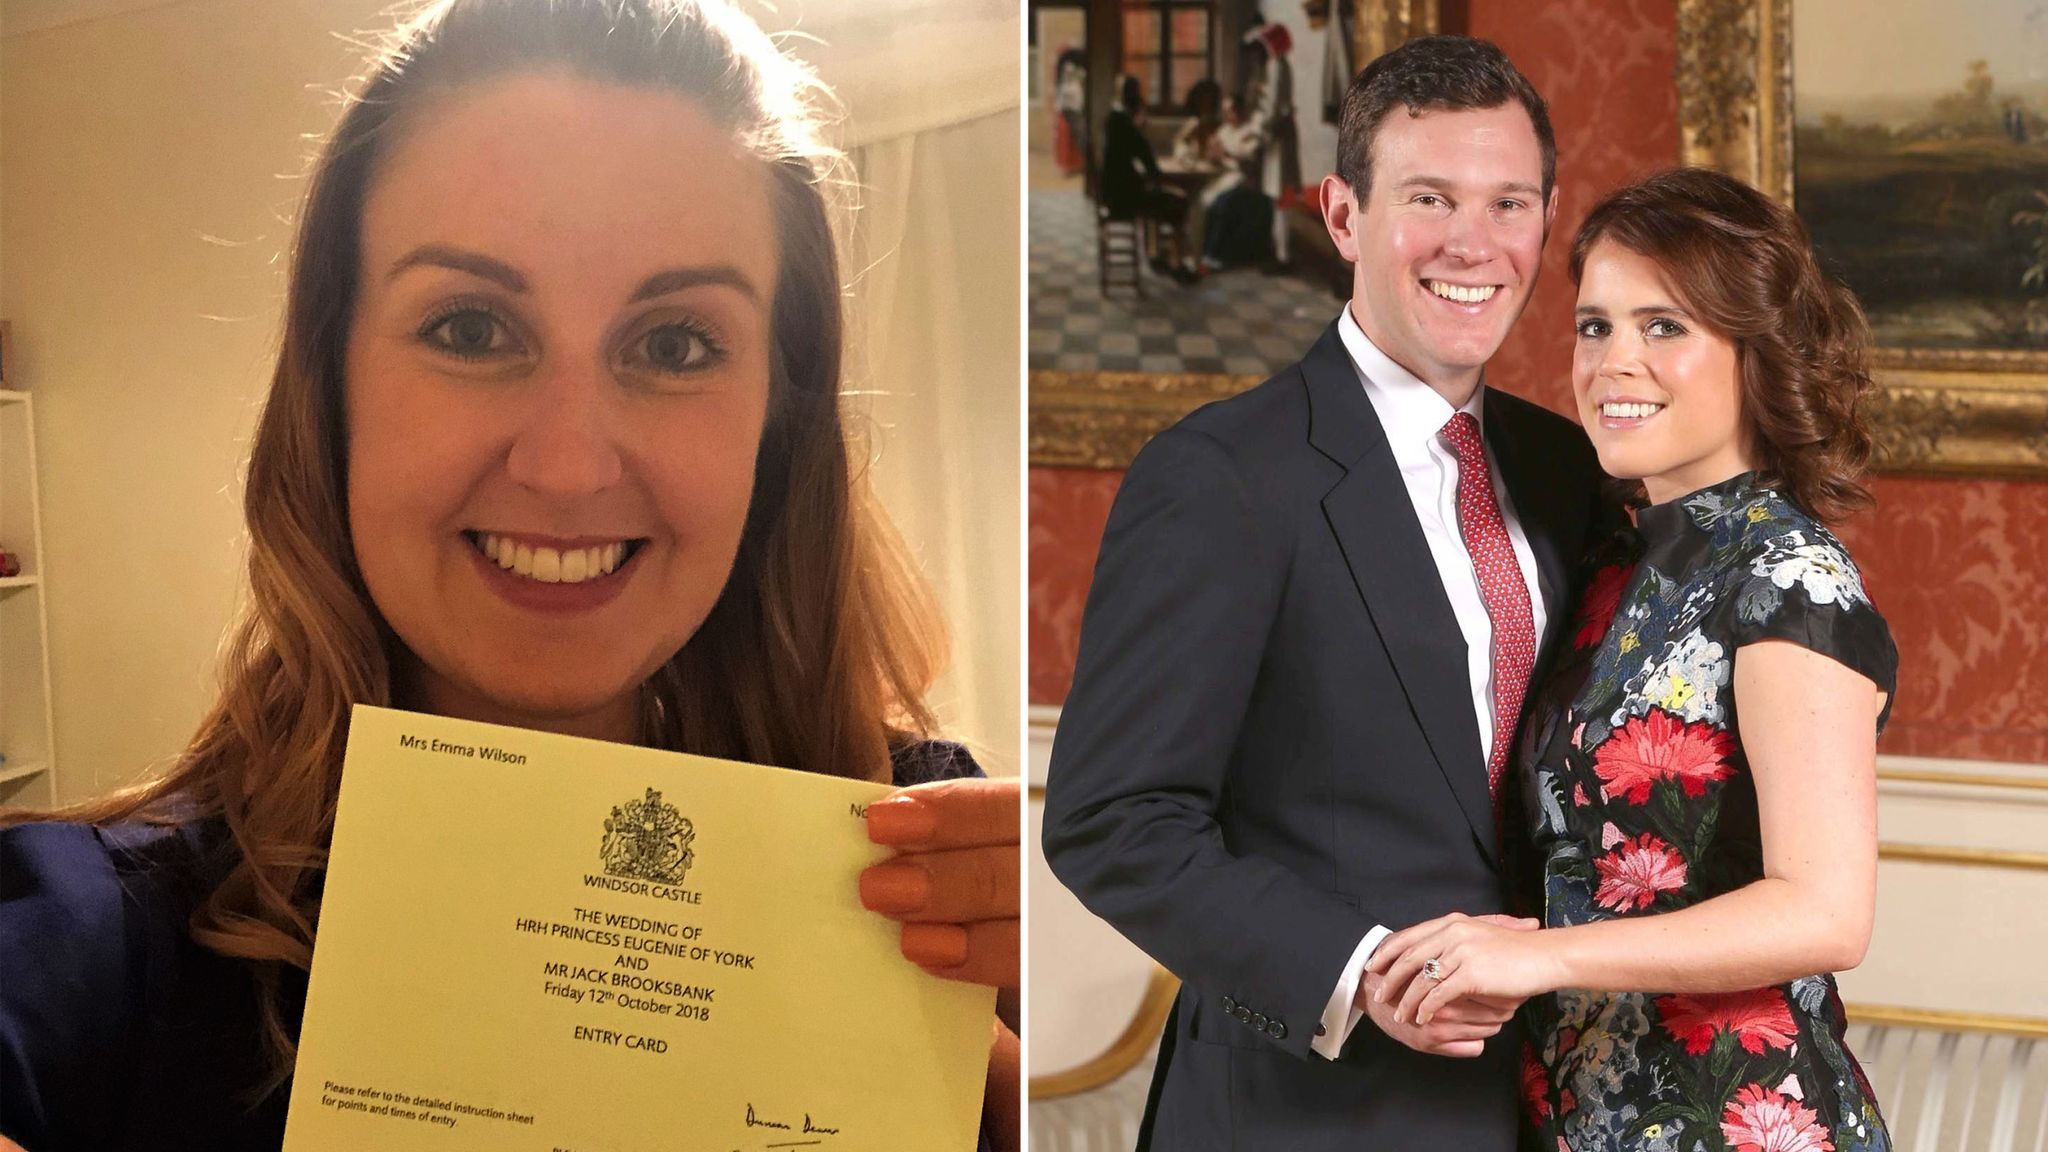 Royal Wedding 2018 Time.I M So Excited To Be Going To Eugenie And Jack Brooksbank S Royal